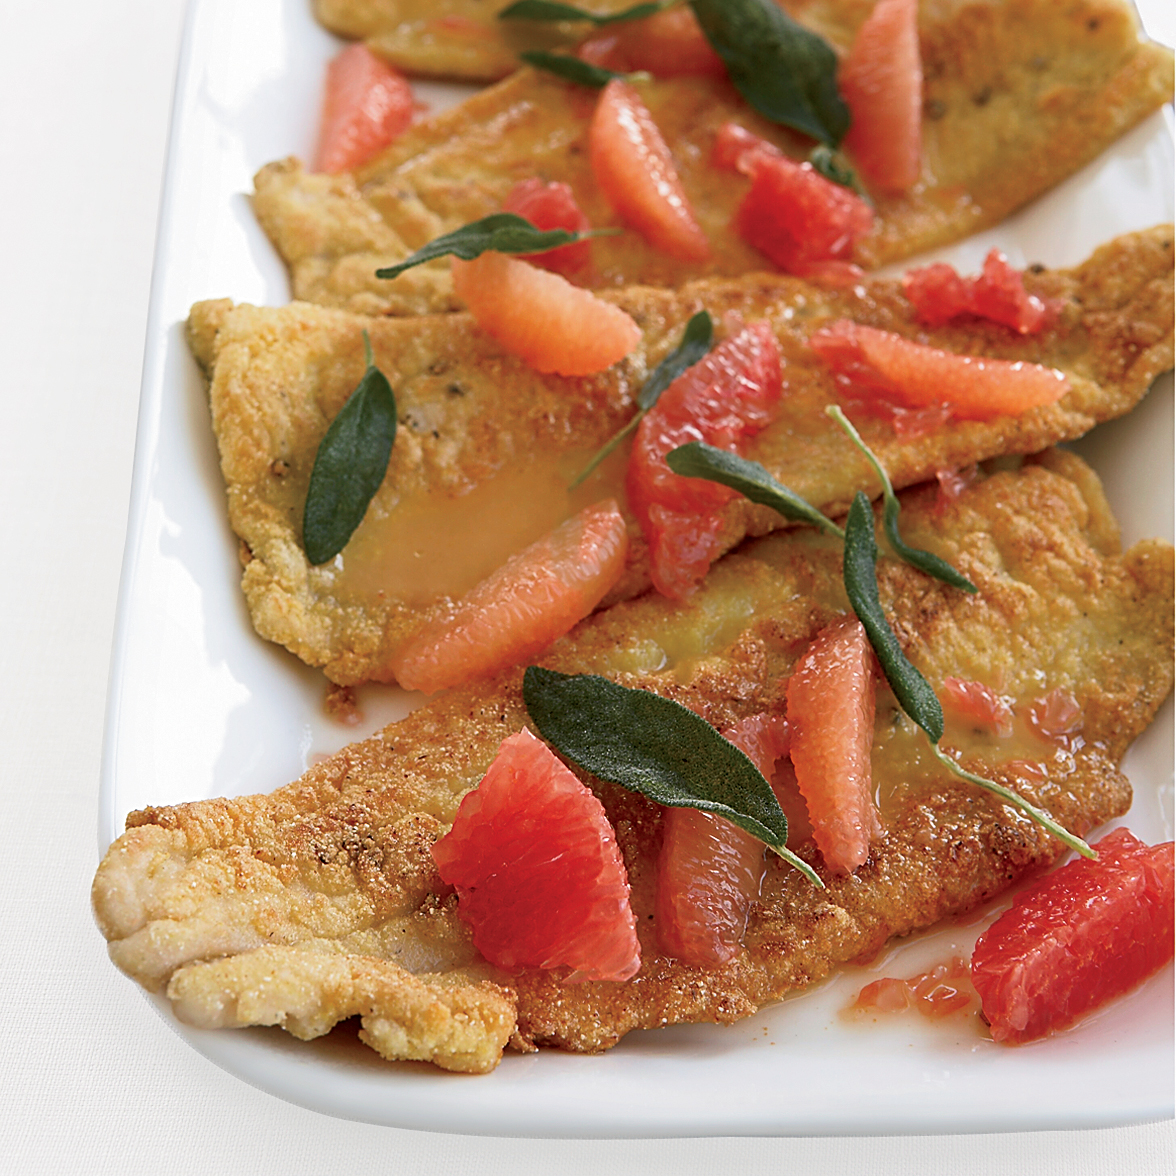 Cornmeal-Fried Trout with Grapefruit and Fried Sage